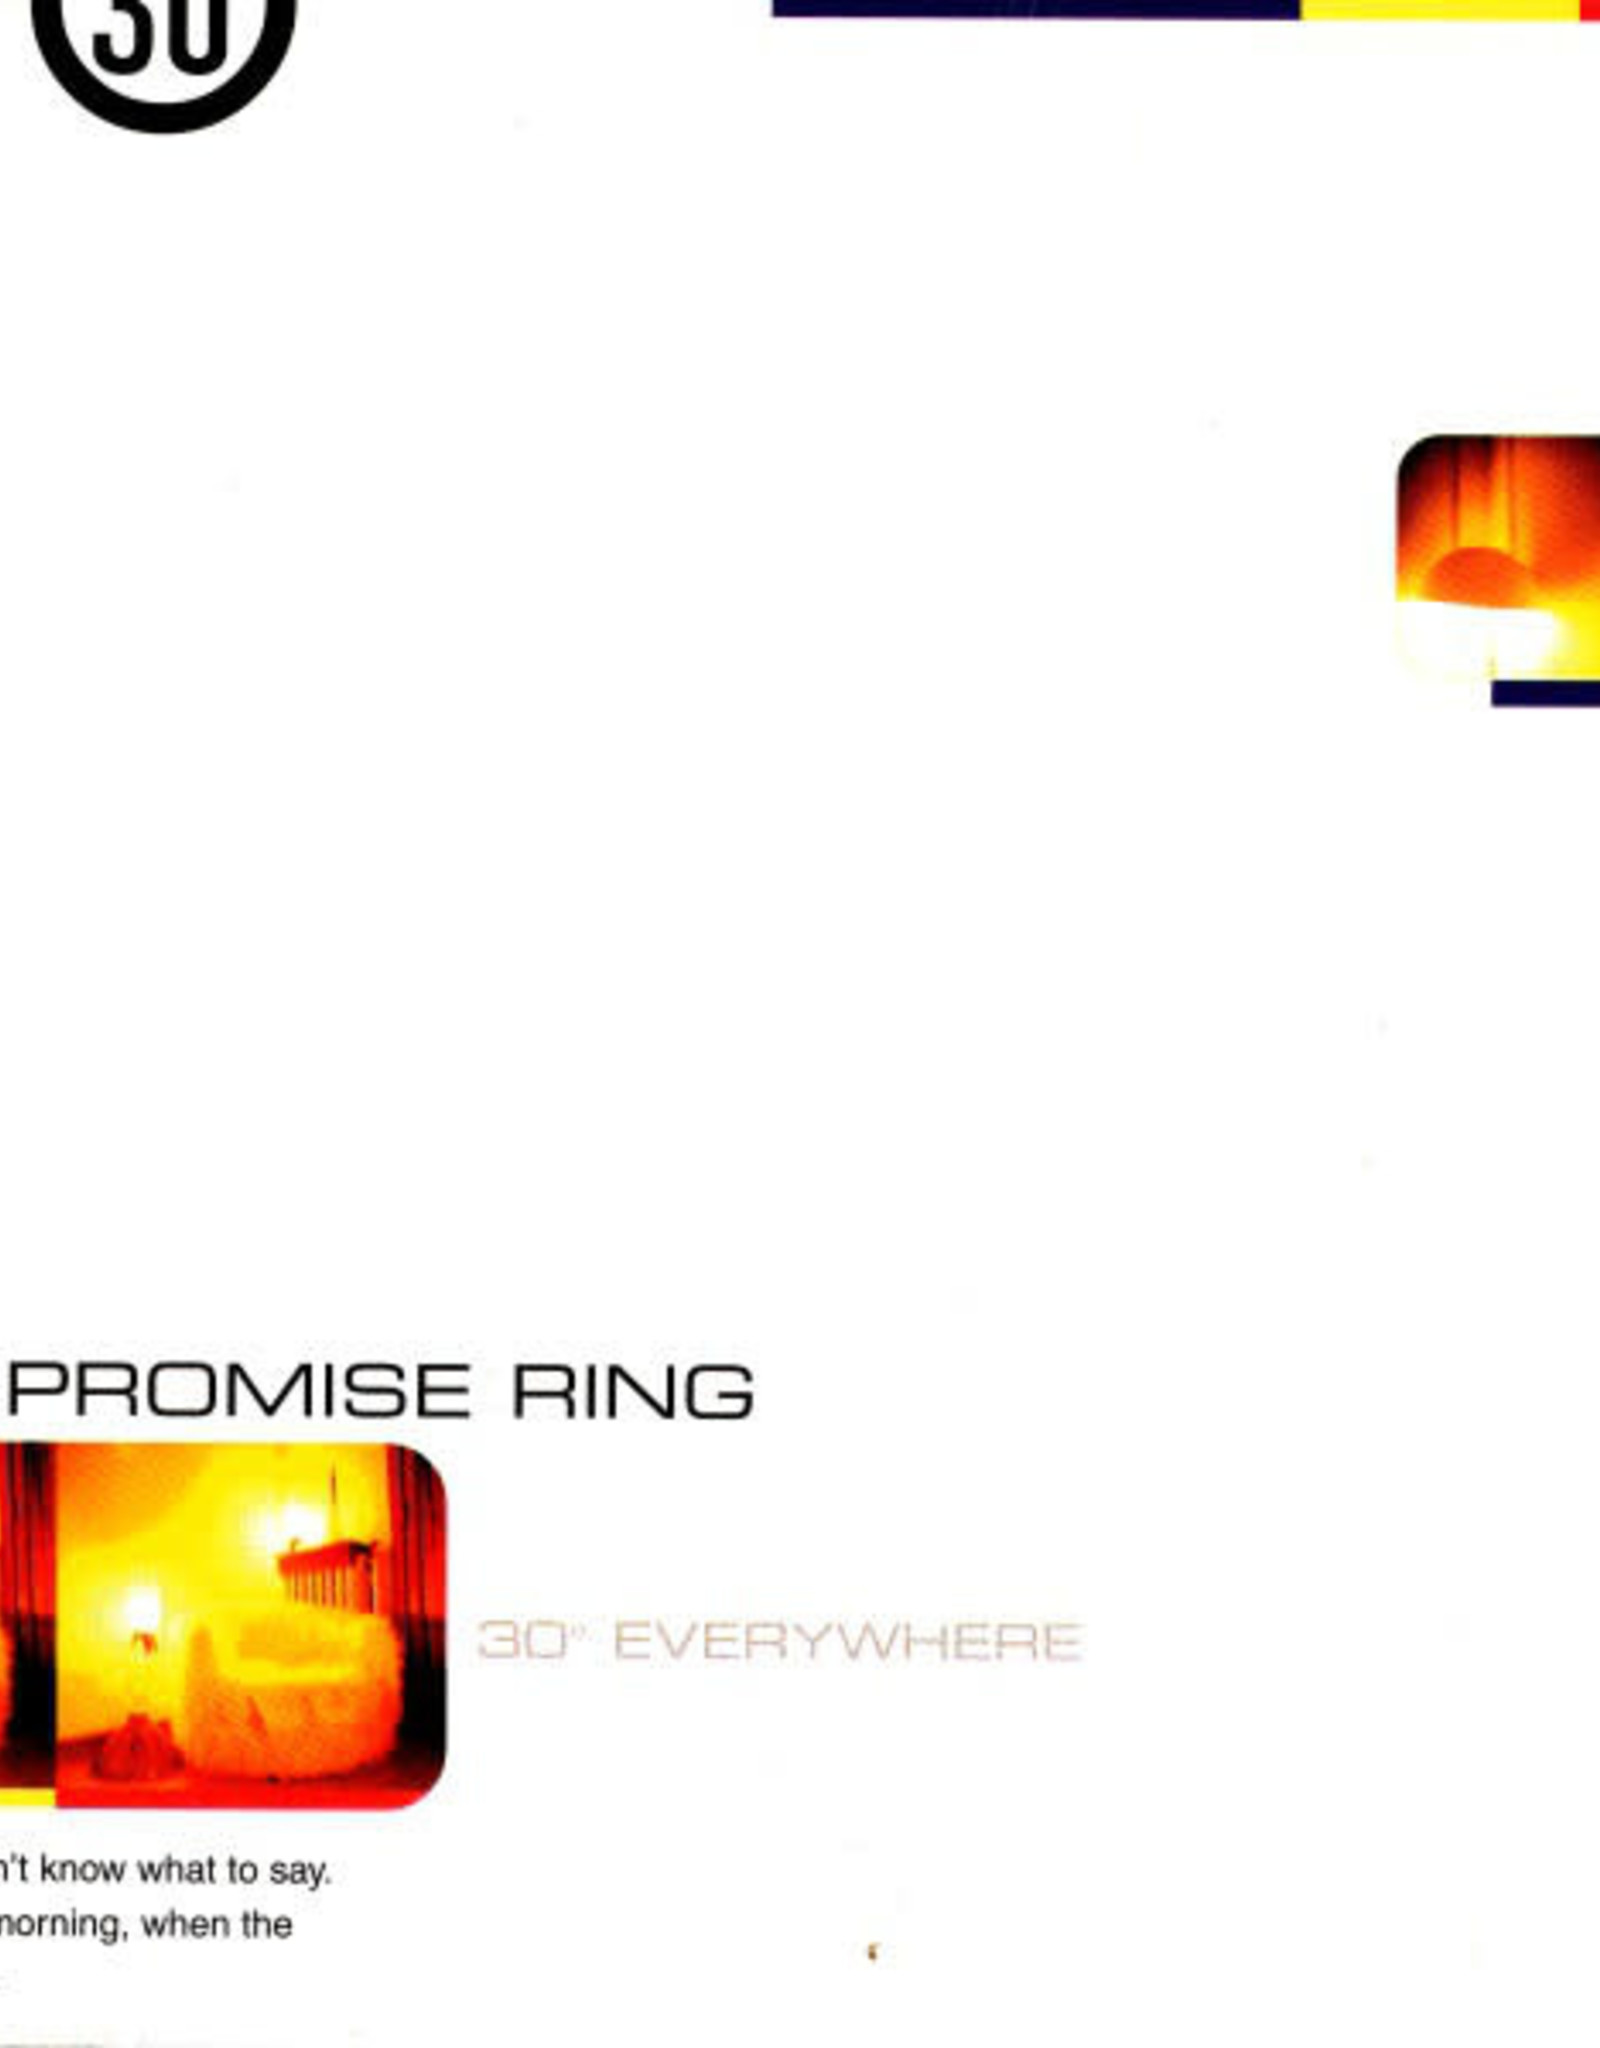 The Promise Ring - 30 Degrees Everywhere (Clear Vinyl)